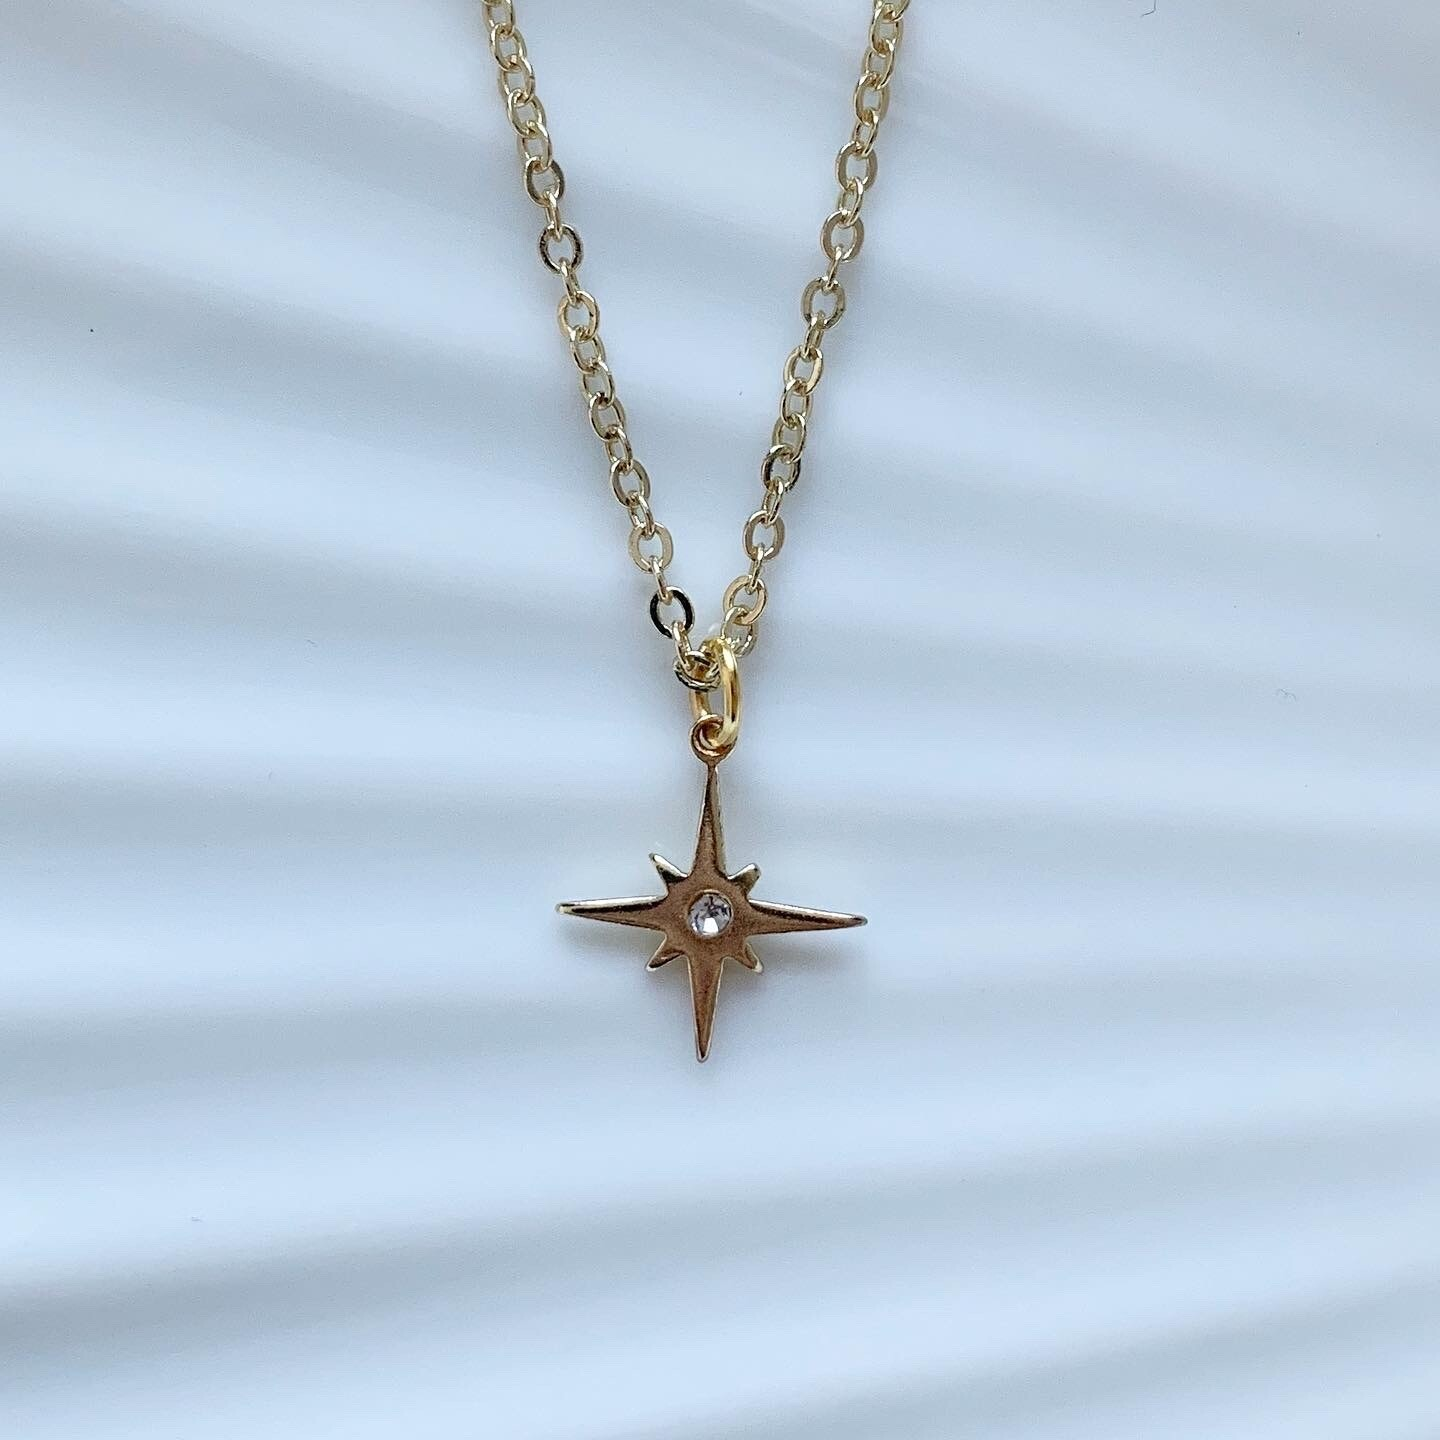 Shining star ketting goud